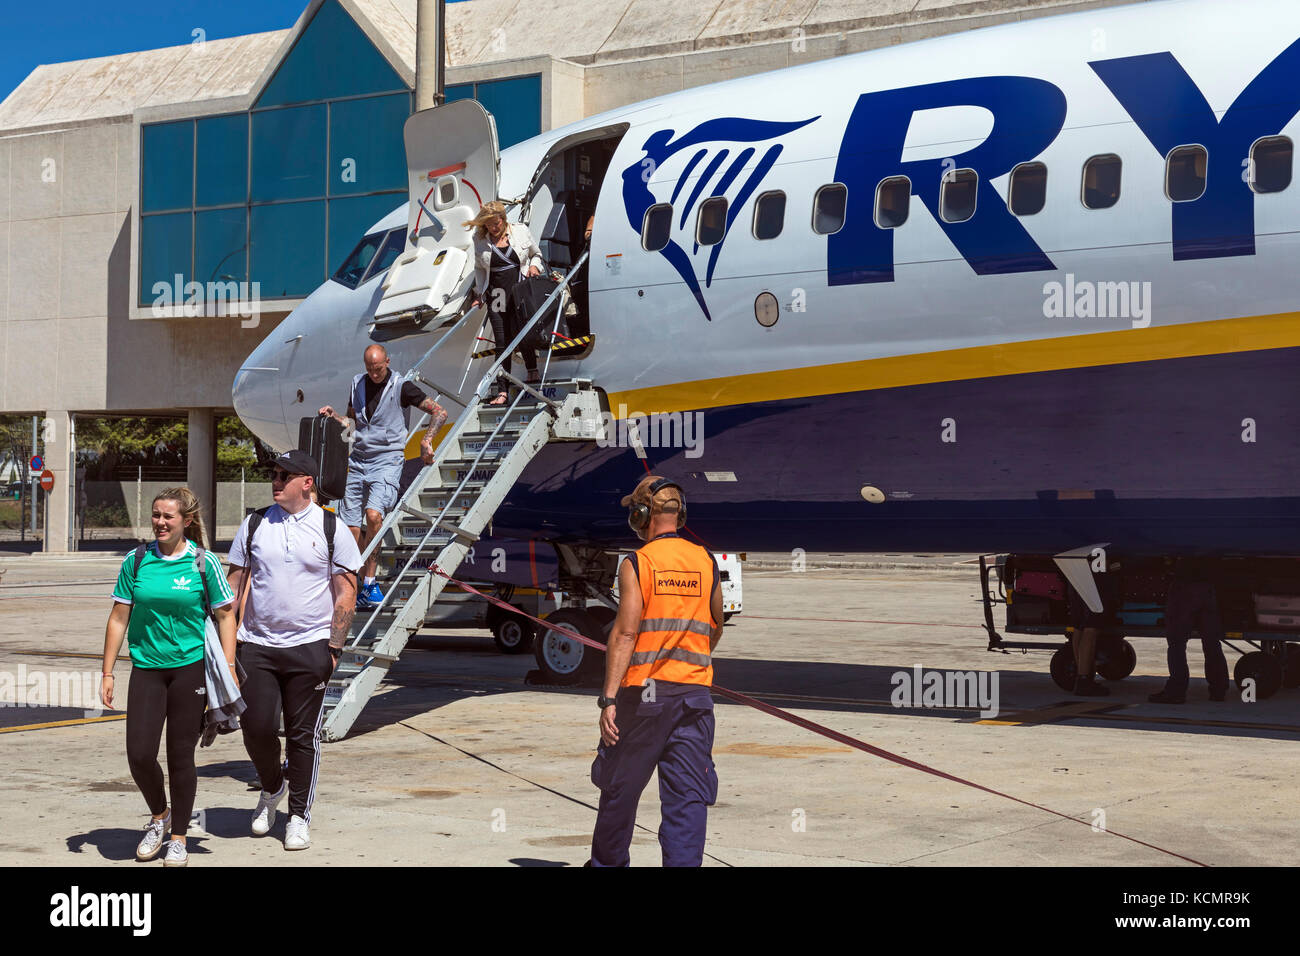 Ryanair flight arriving at Palma de Majorca airport, Spain Stock Photo: 162726527 - Alamy